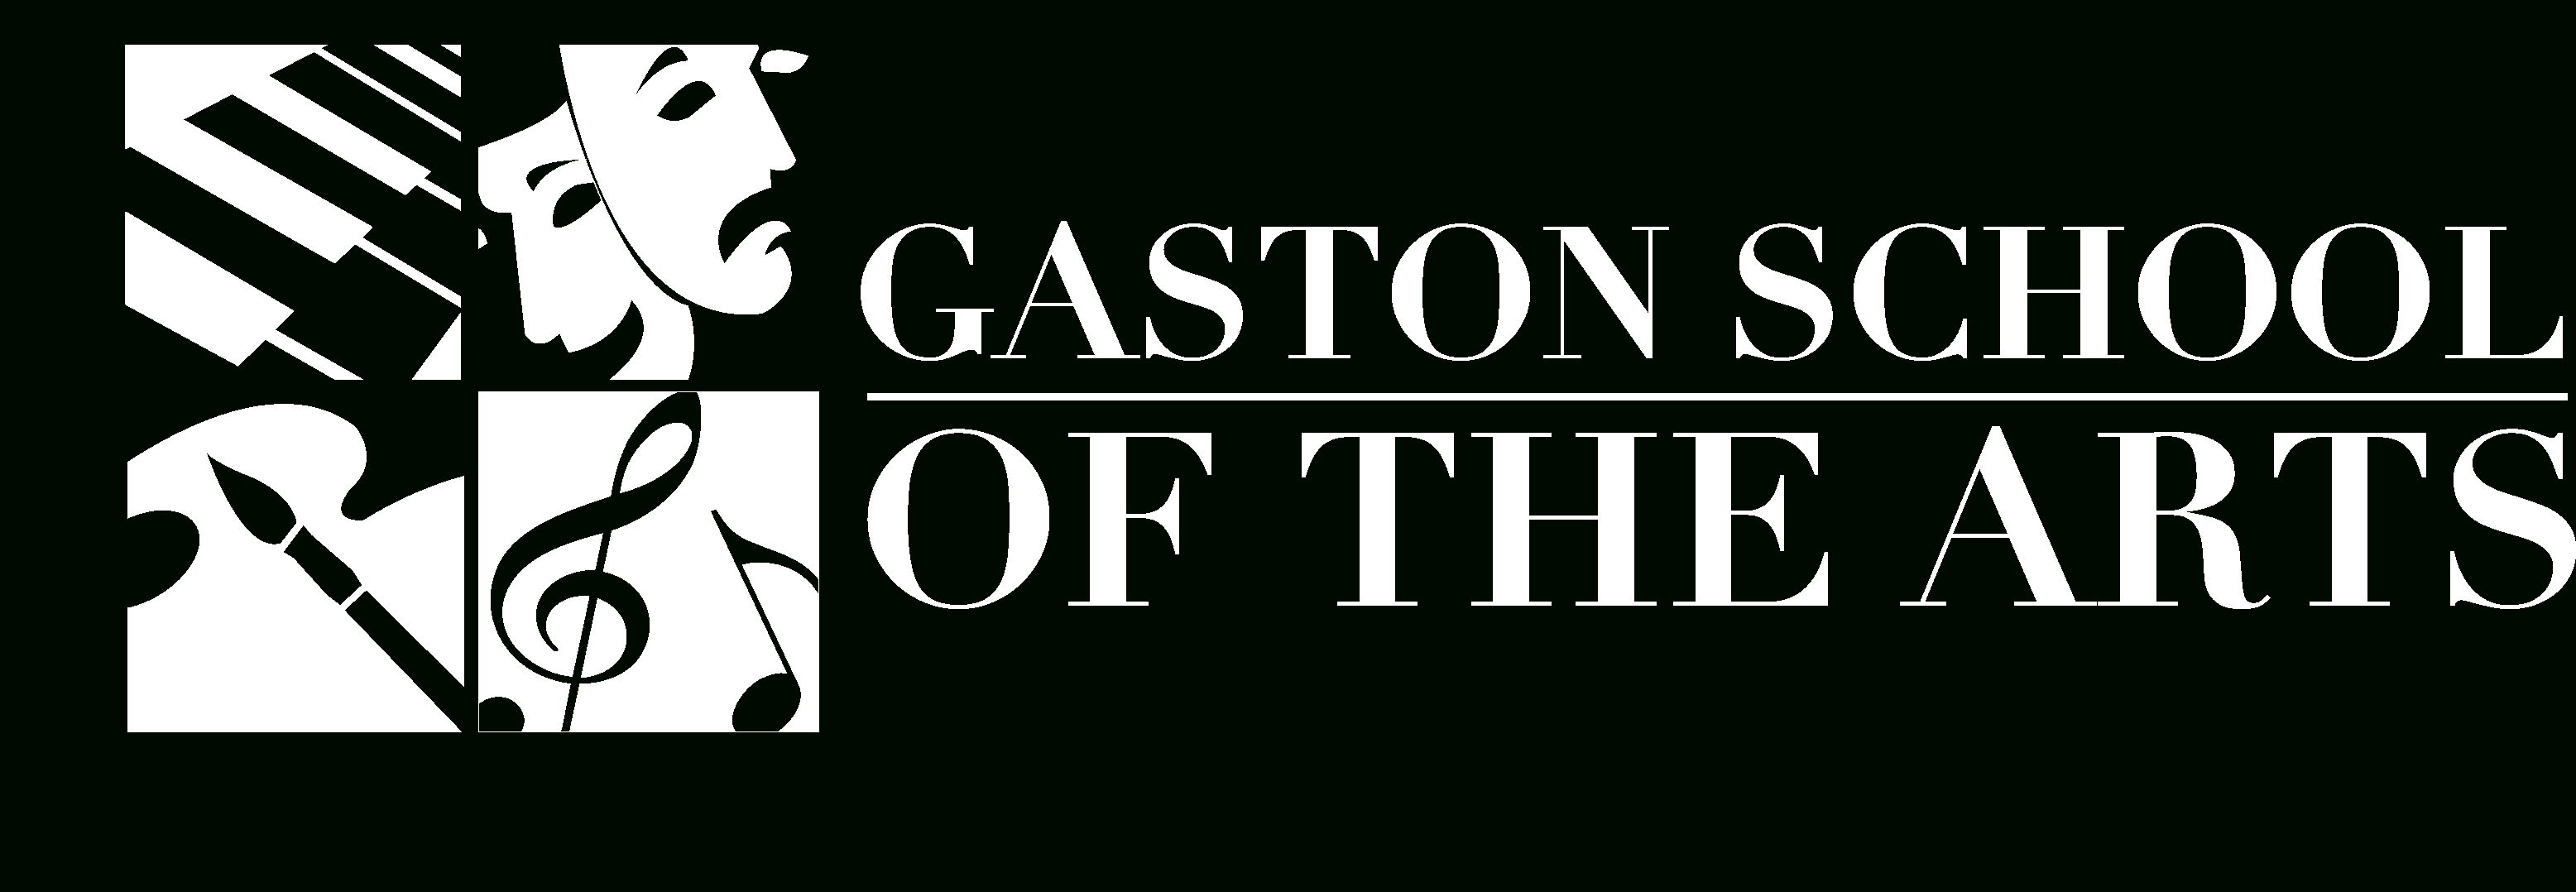 Gaston School Of The Arts in Gaston County School Calendar